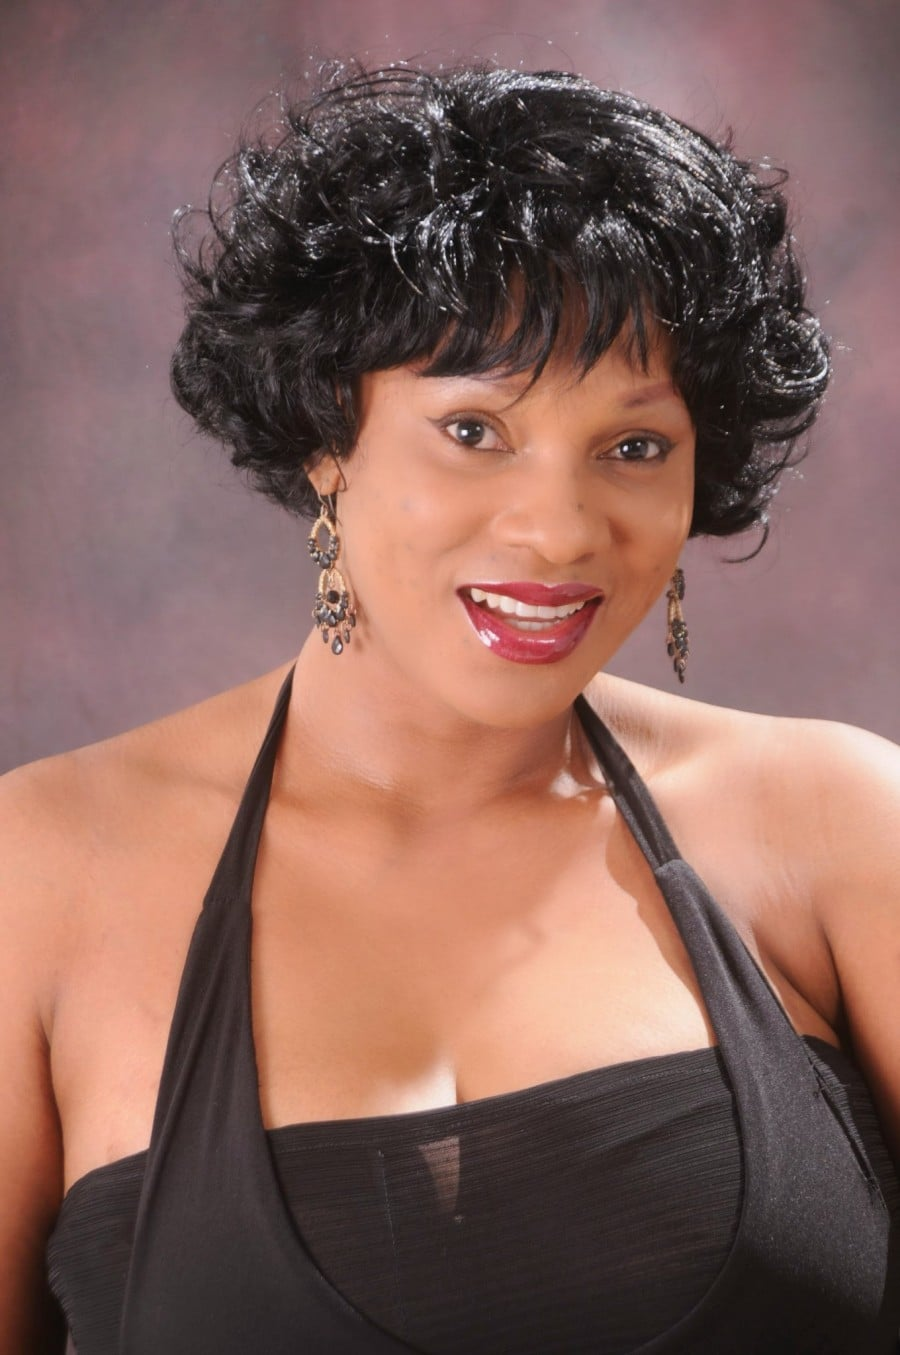 Chiege Alisigwe is one of the most beautiful actresses in Nollywood